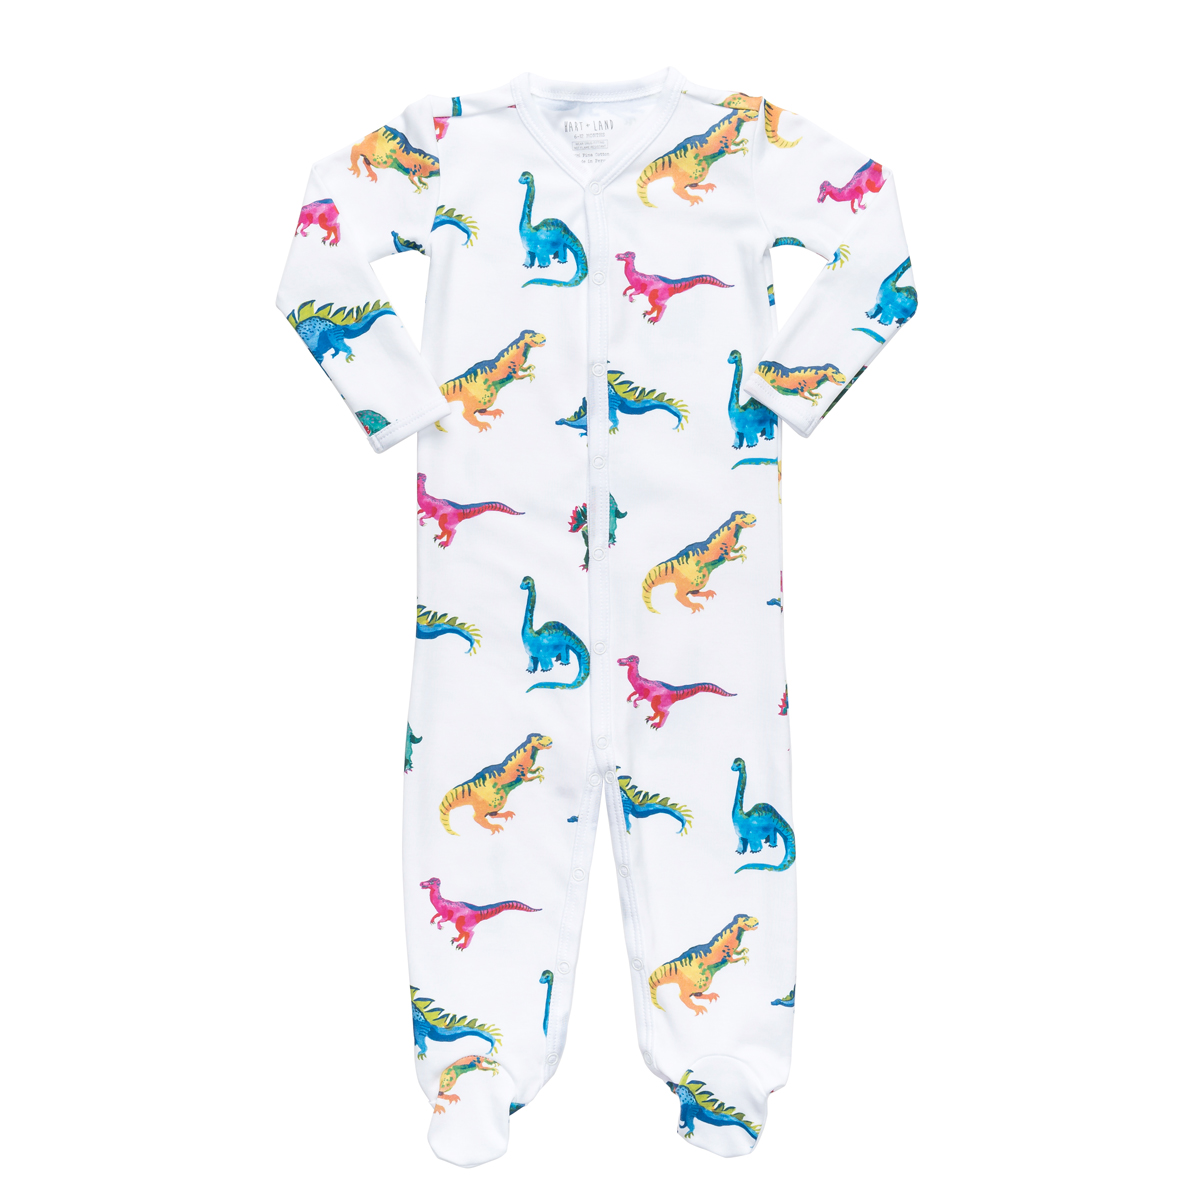 Hart + Land Footed Bodysuit PJ in Dinosaurs Print